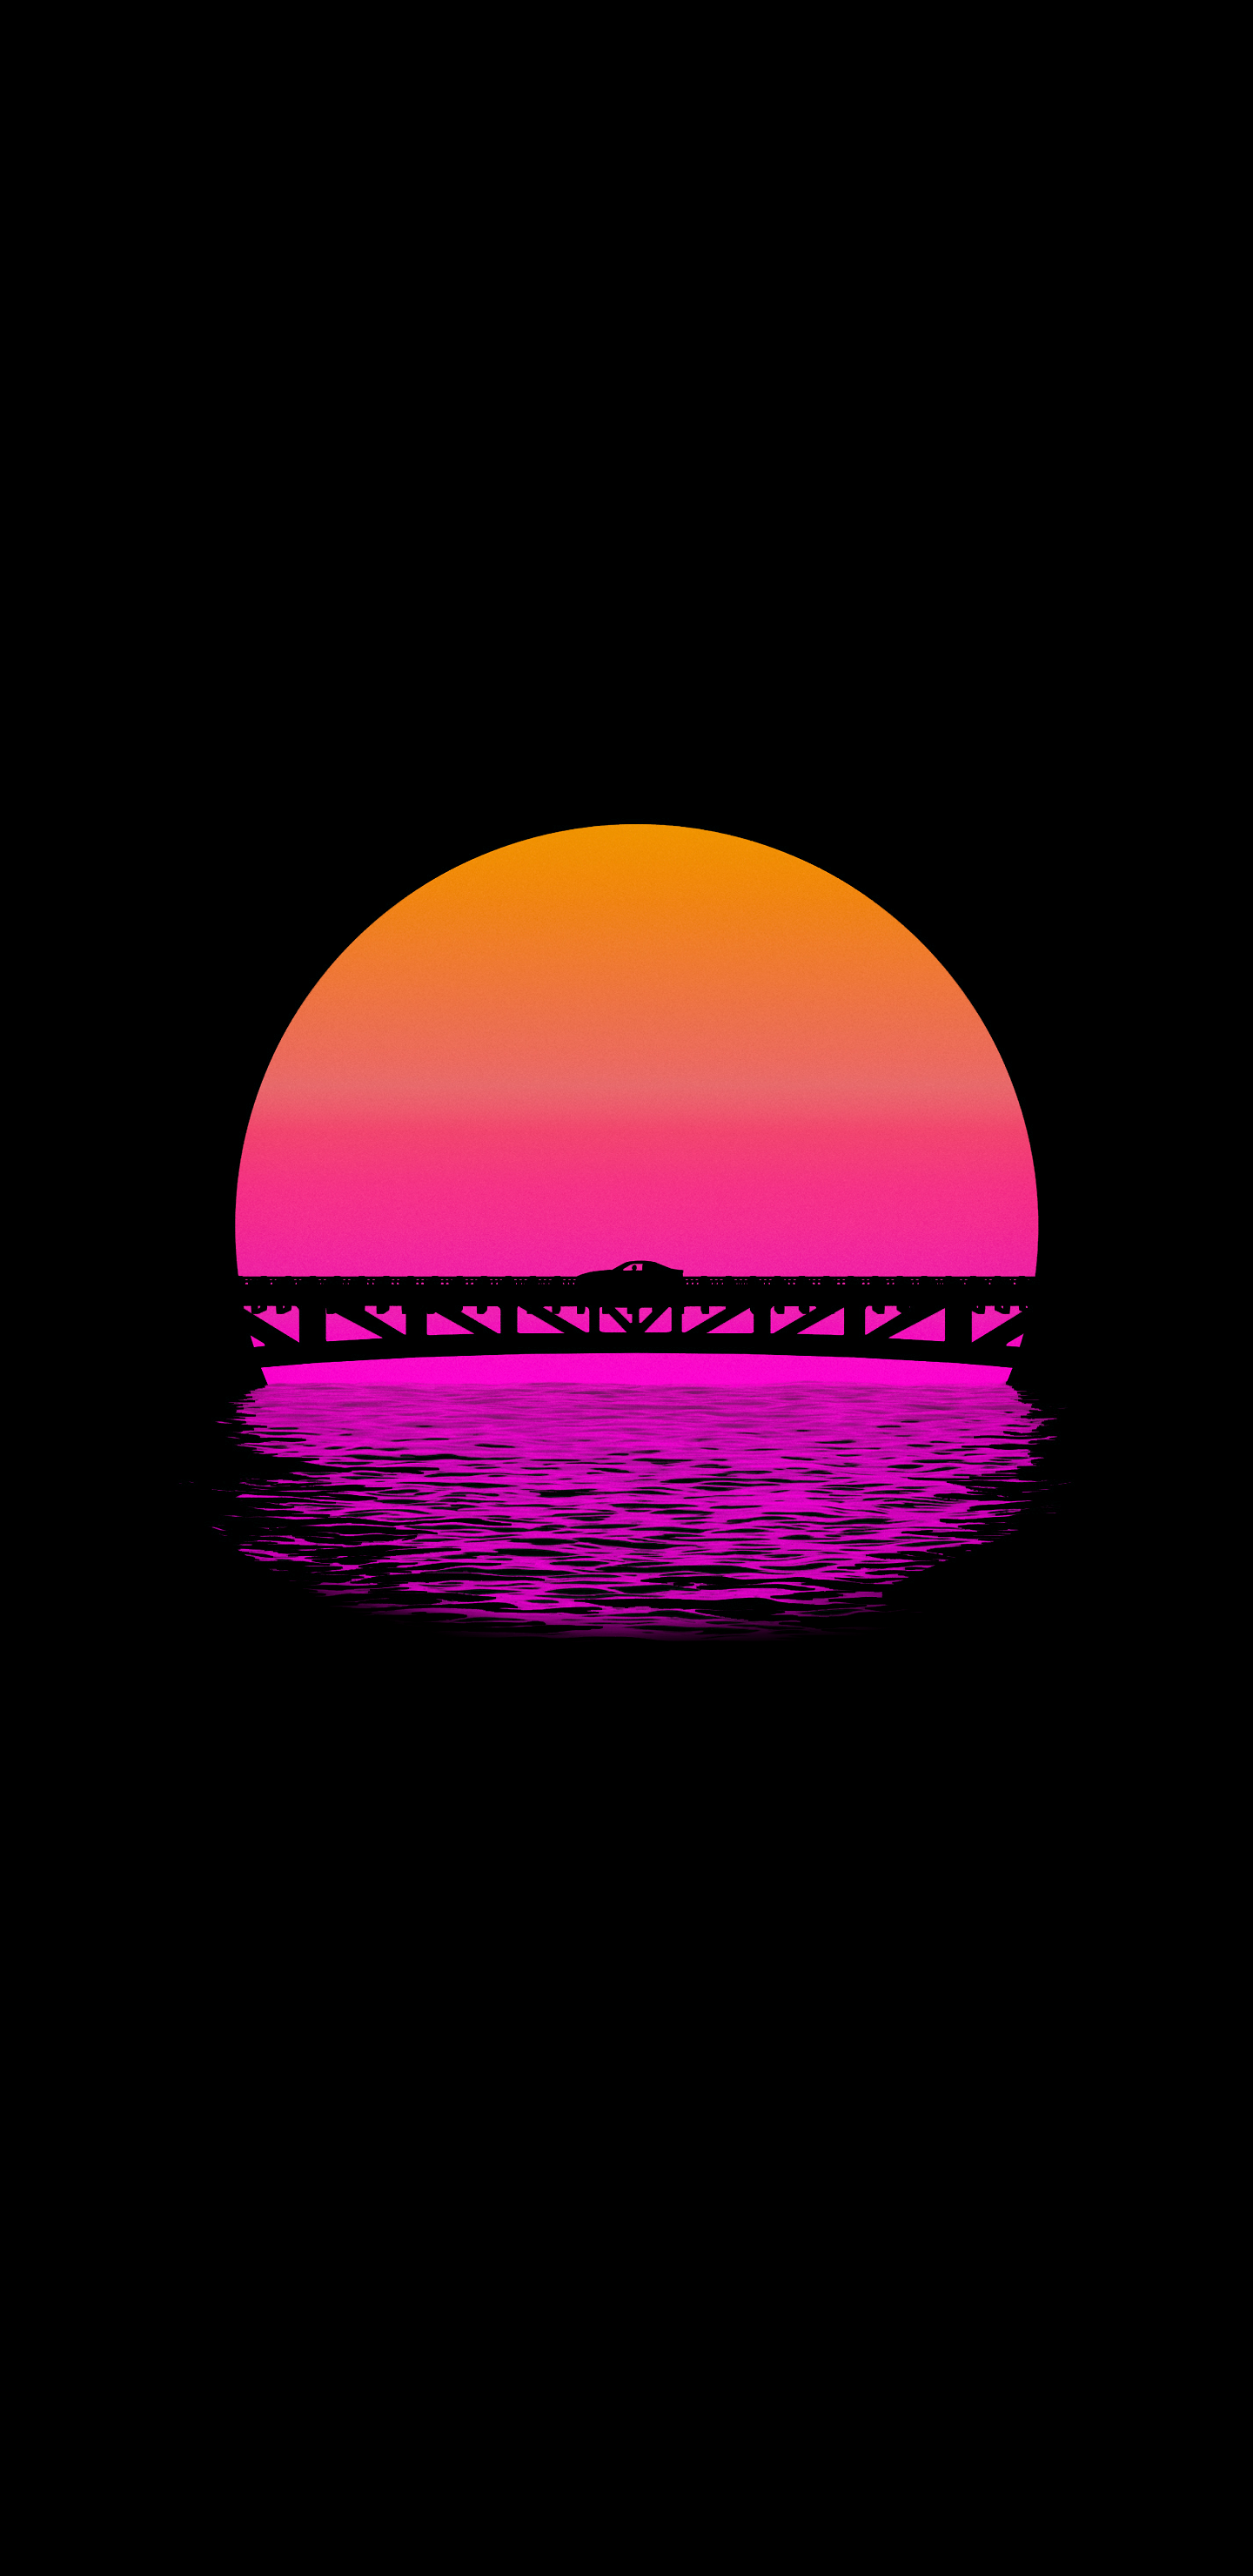 Outrun Sunset 1440x2960 I Imgur Com Submitted By Theunchainedzebra To R Amoledbackgrounds 1 Comments Sunset Wallpaper Vaporwave Wallpaper Glitch Wallpaper